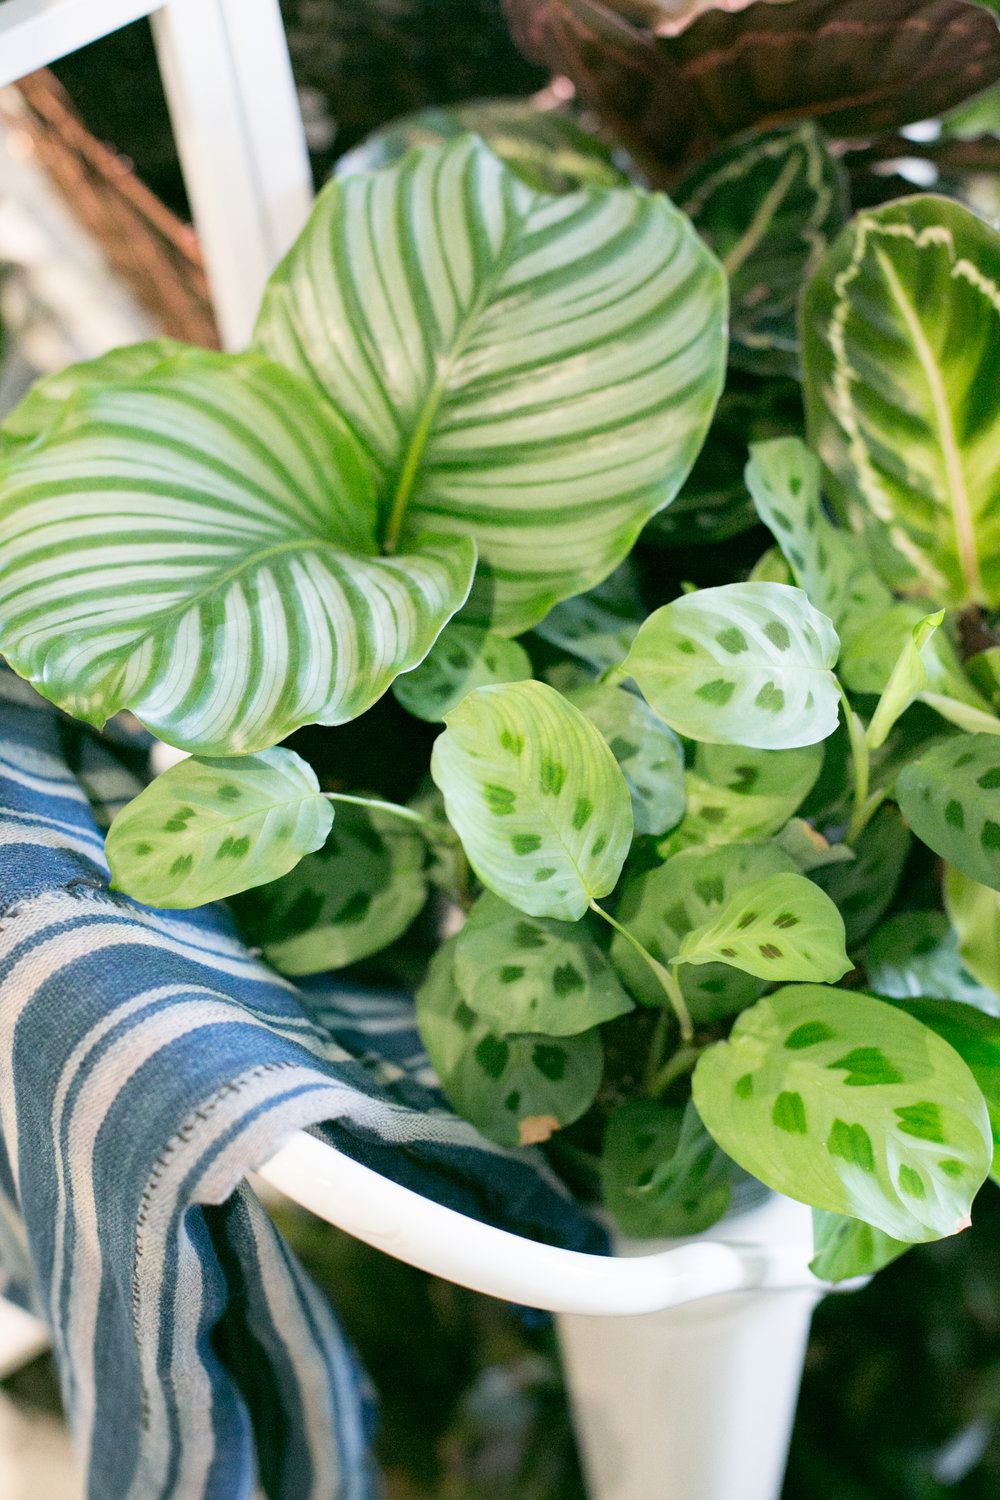 Calathea ( Calathea orbifolia ) and Maranta  (Maranta leuconeura ) are common tropical houseplants, known for their delightful leaf patterns.